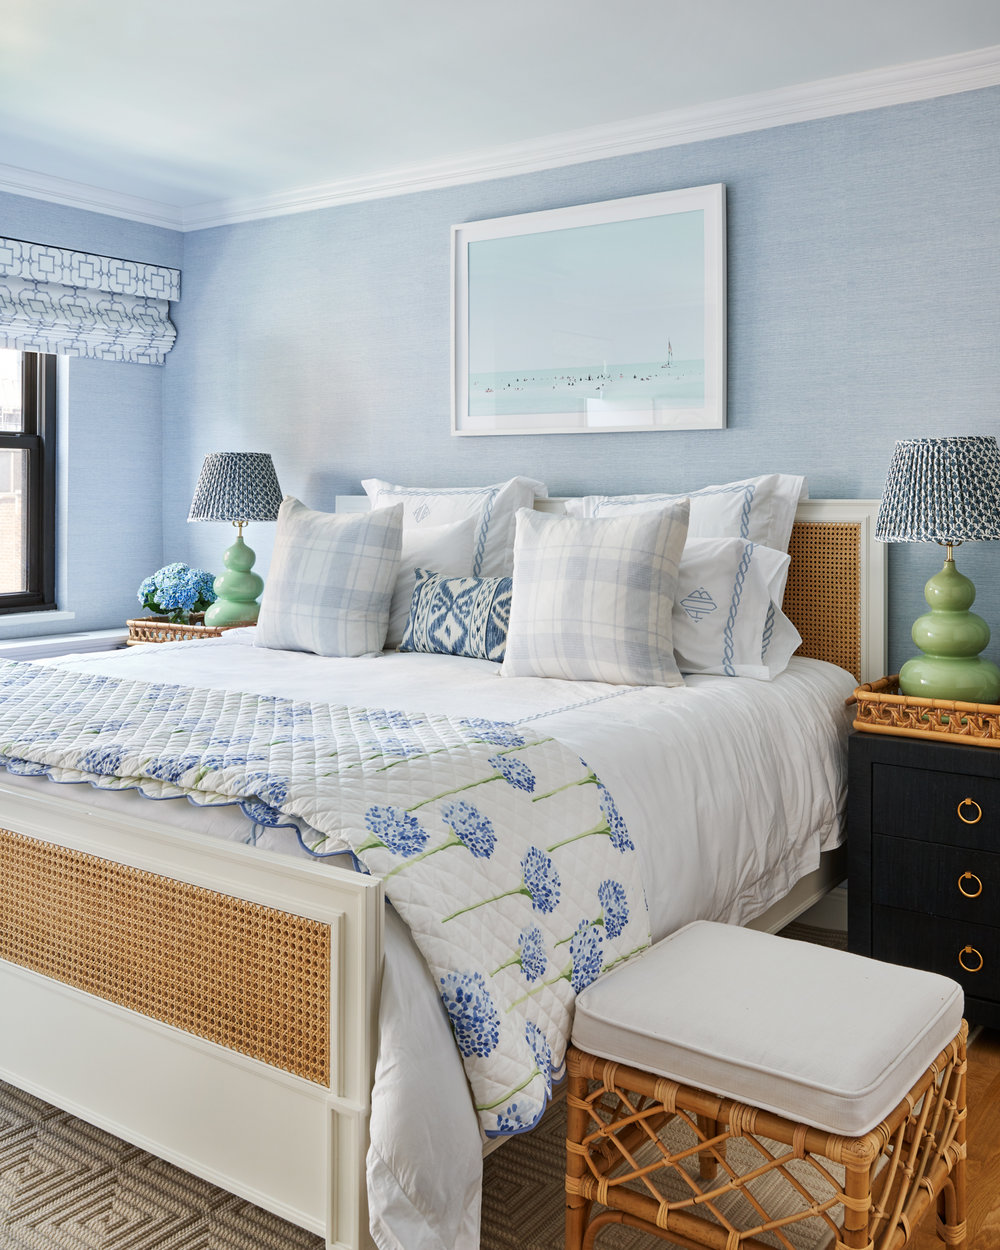 blue floral white and wicker bedroom set